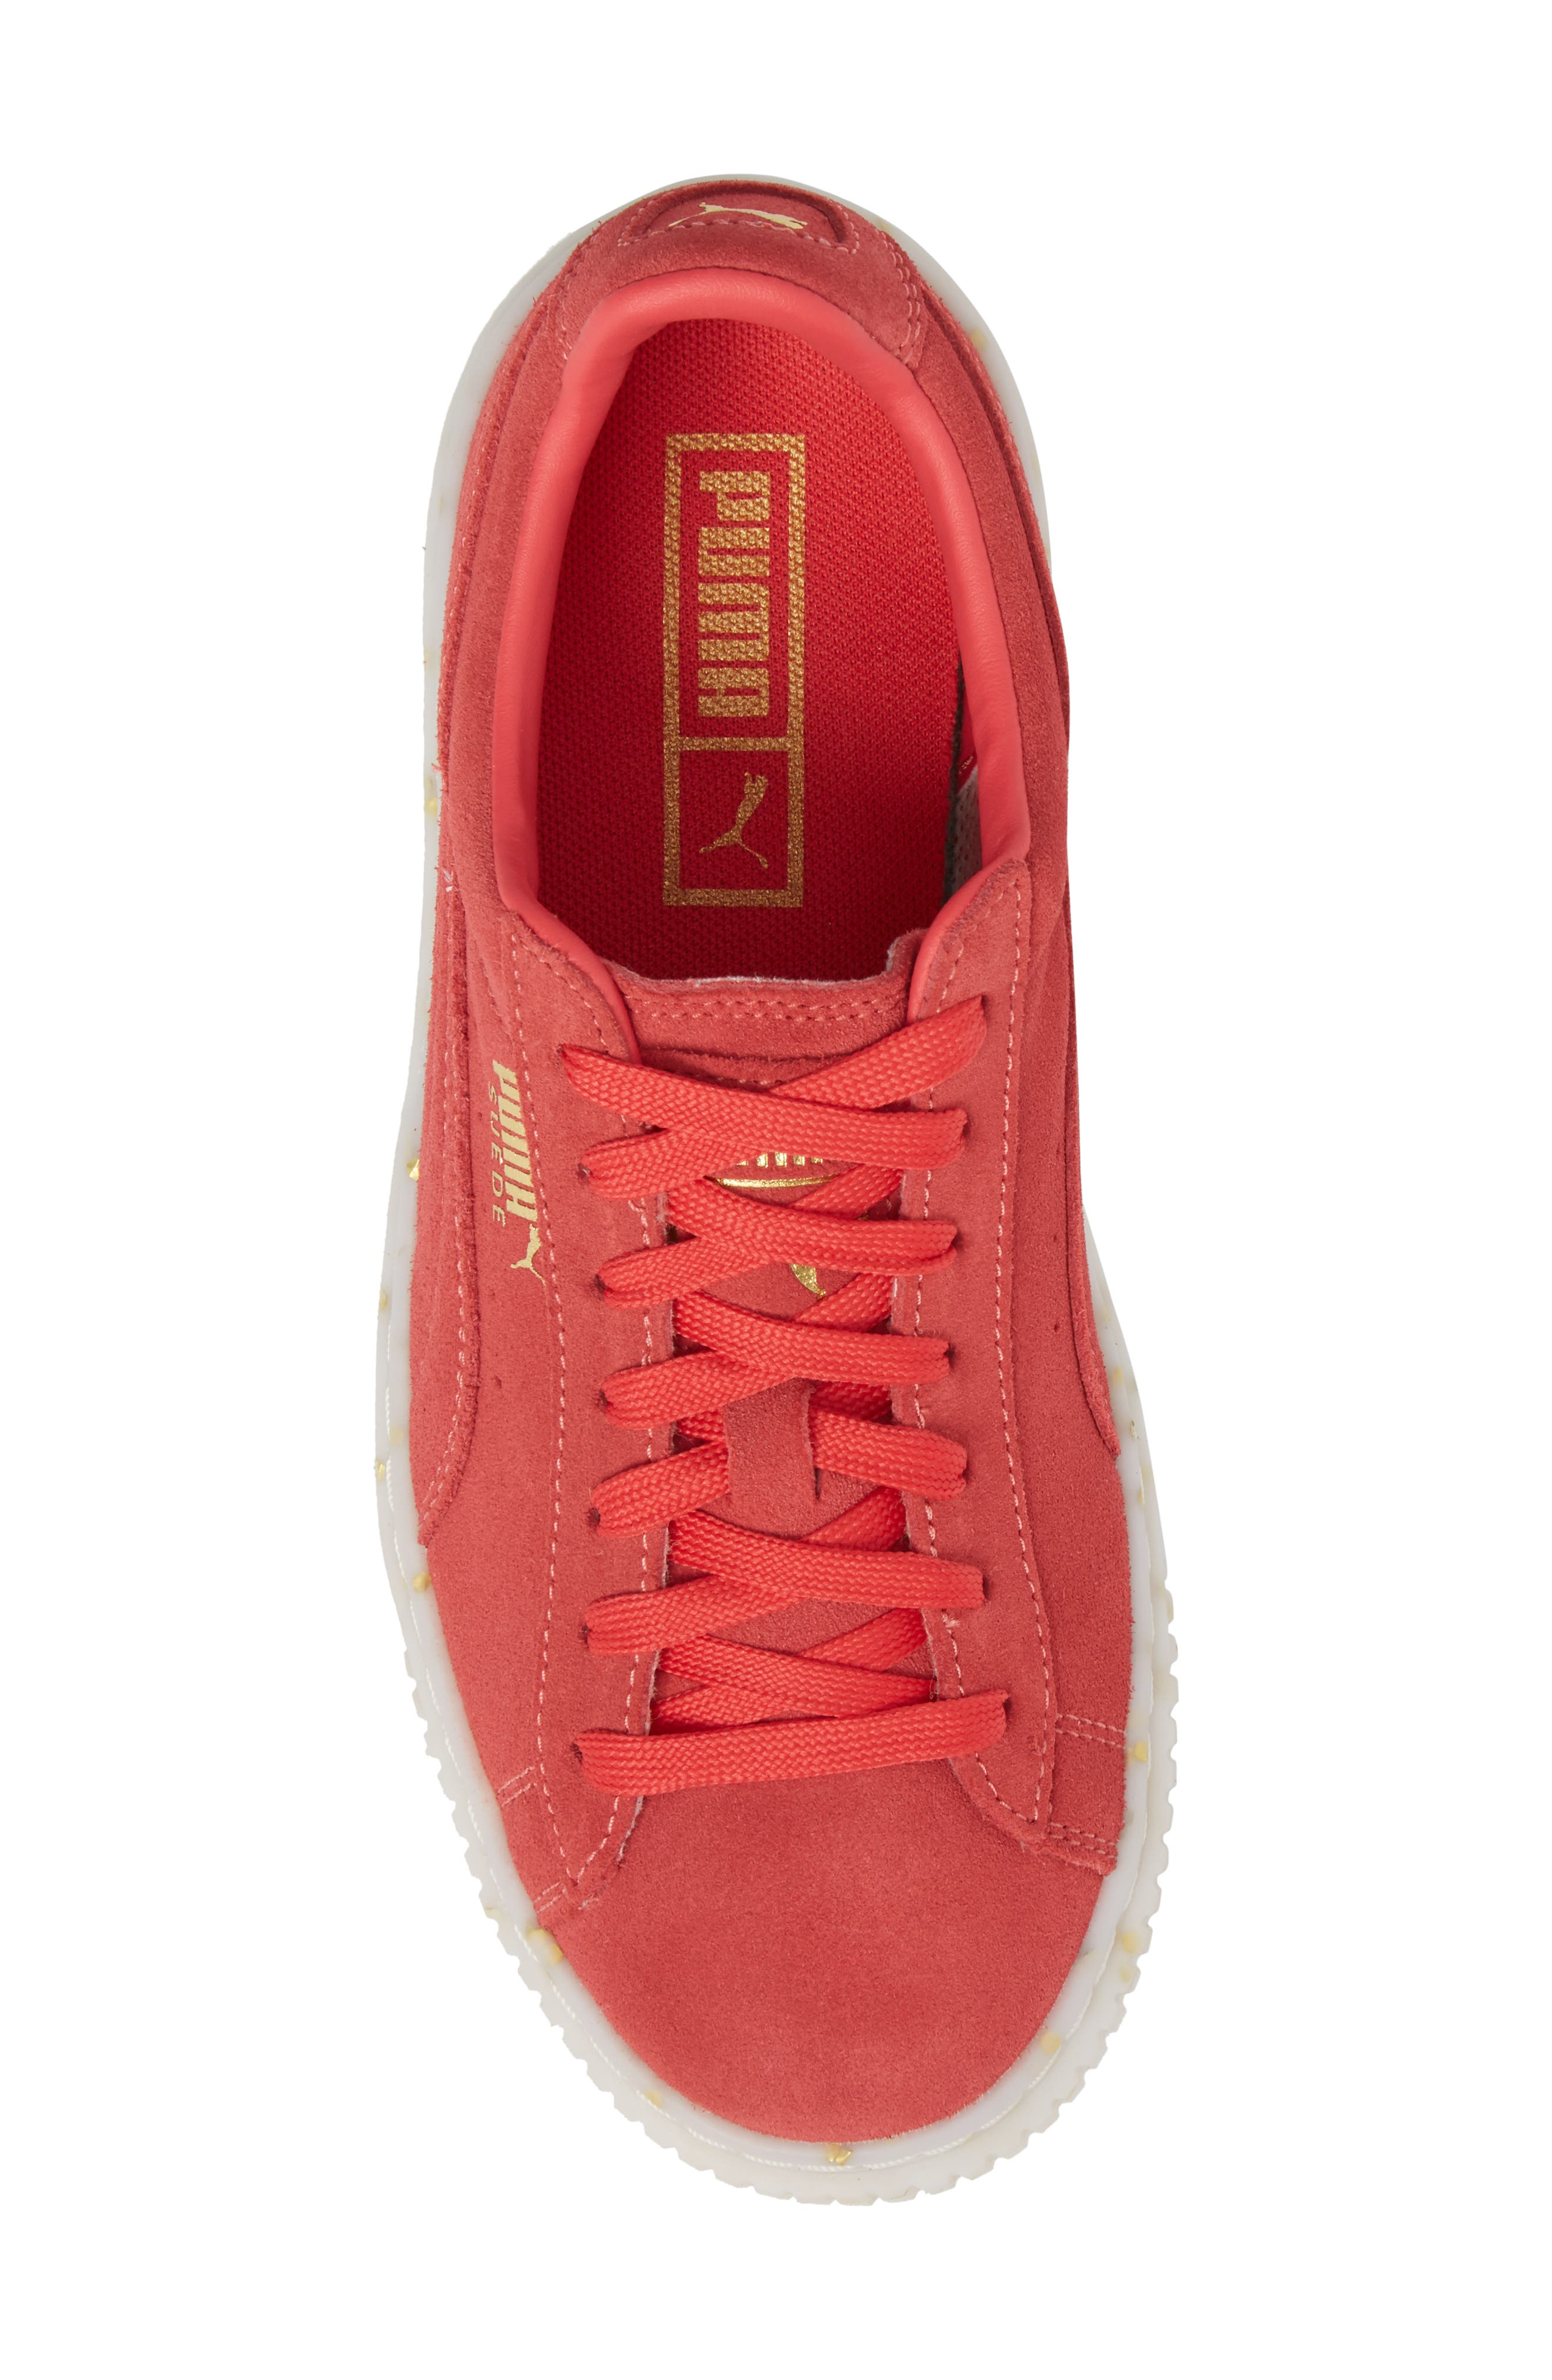 PUMA, Suede Platform Sneaker, Alternate thumbnail 5, color, PARADISE PINK/ TEAM GOLD